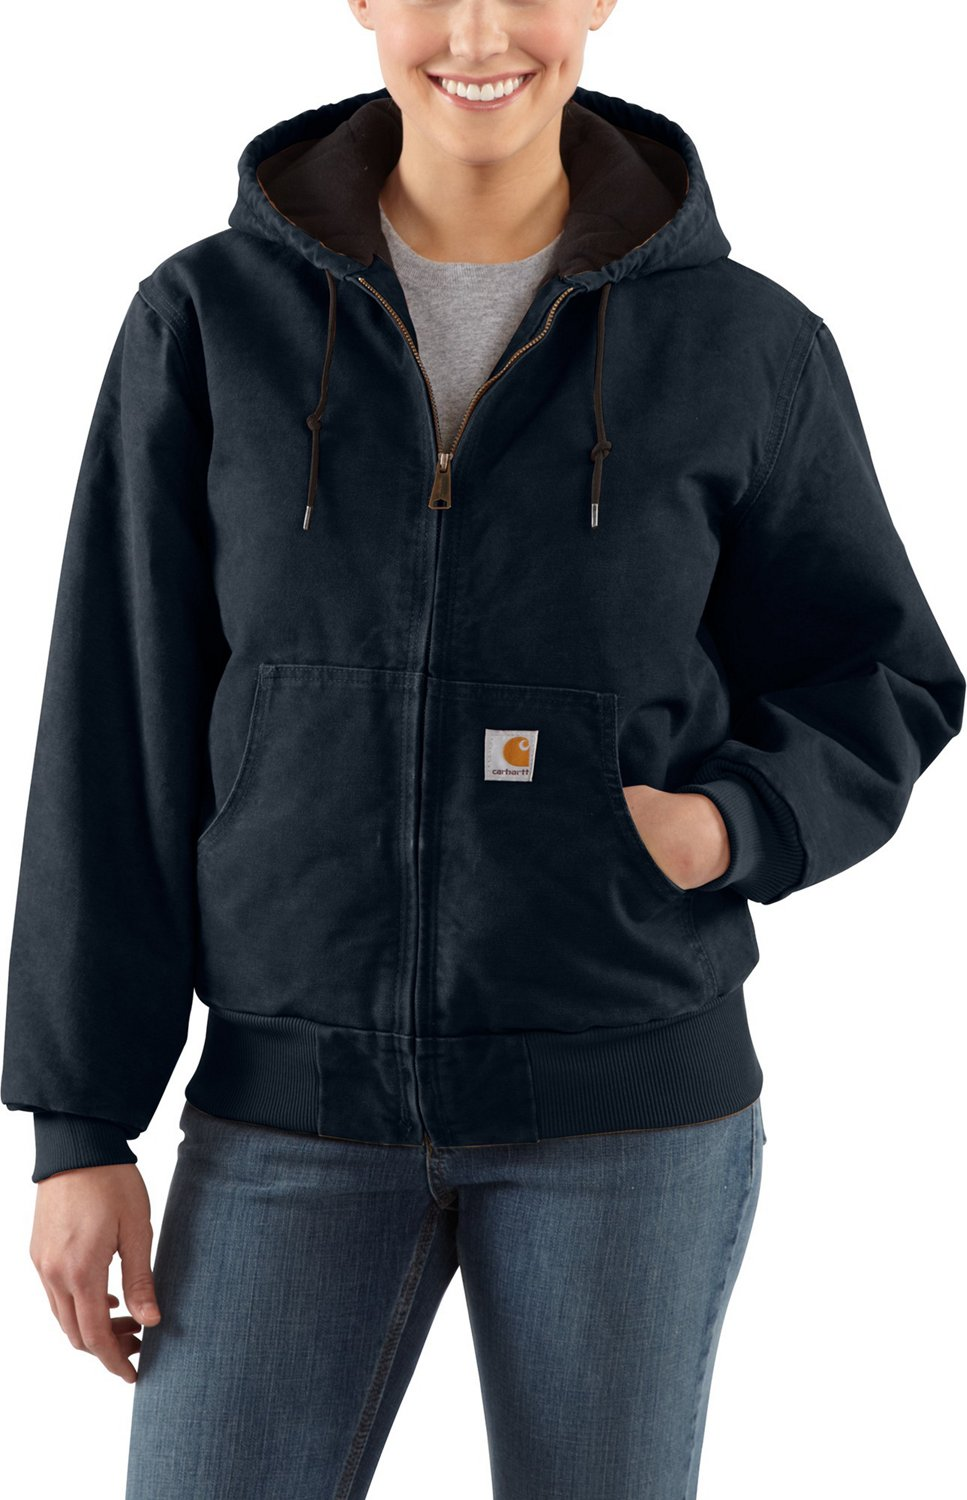 Jackets For Women Academy Jacket Tad Inner Polar Safety Display Product Reviews Carhartt Womens Sandstone Active Quilted Flannel